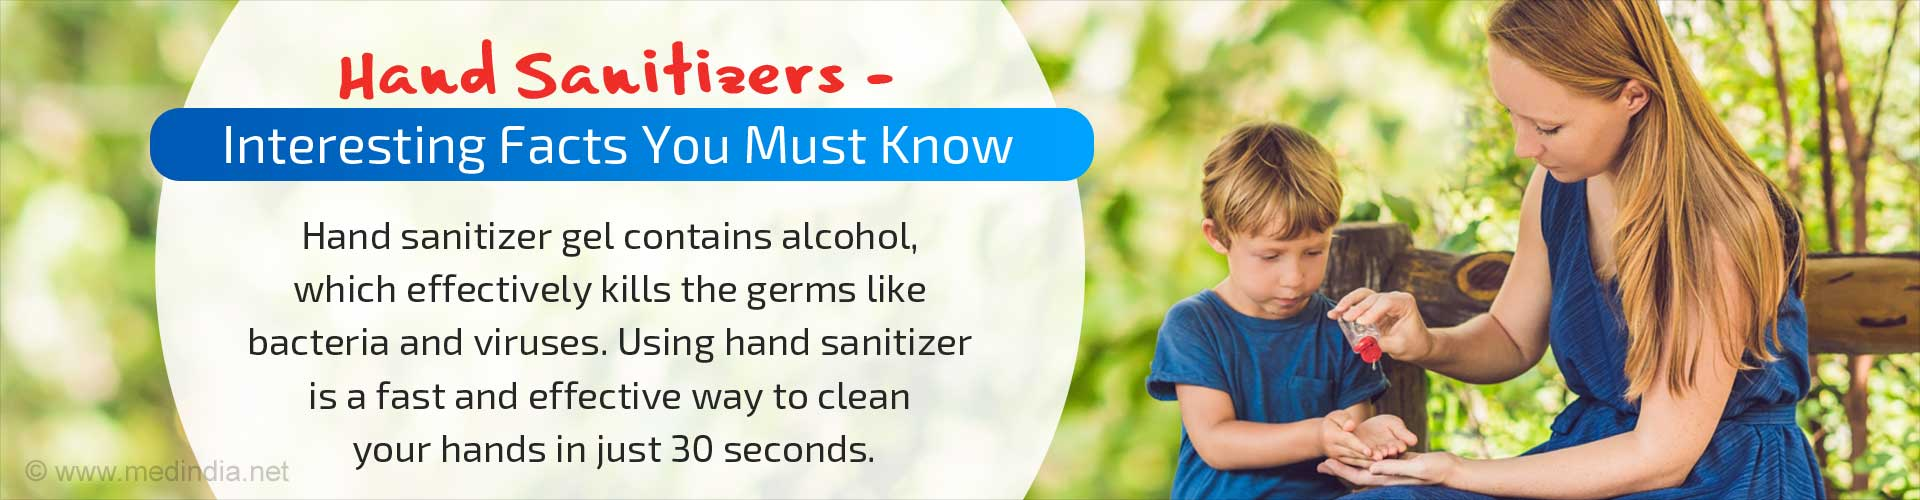 Hand Sanitizers - Interesting Facts You Must Know